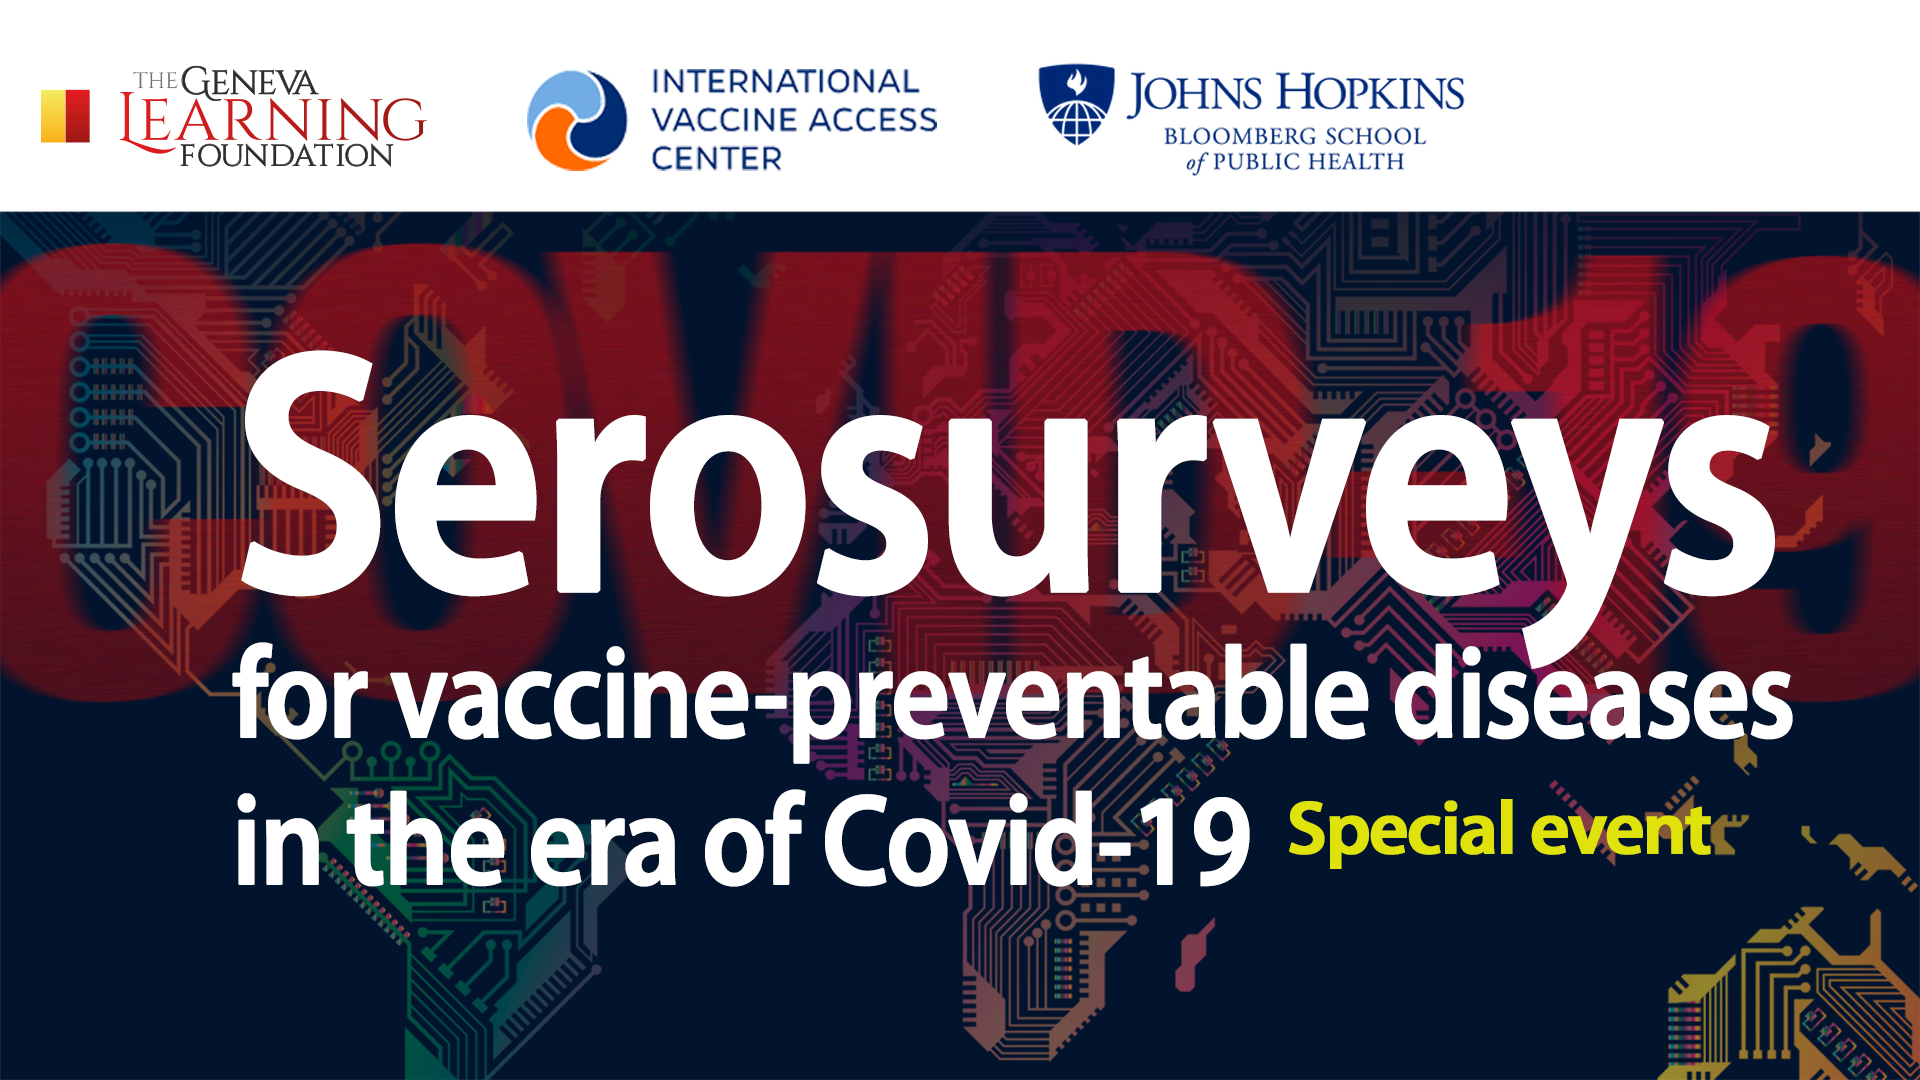 Serosurveys for vaccine-preventable diseases in the era of Covid-19 Special Event